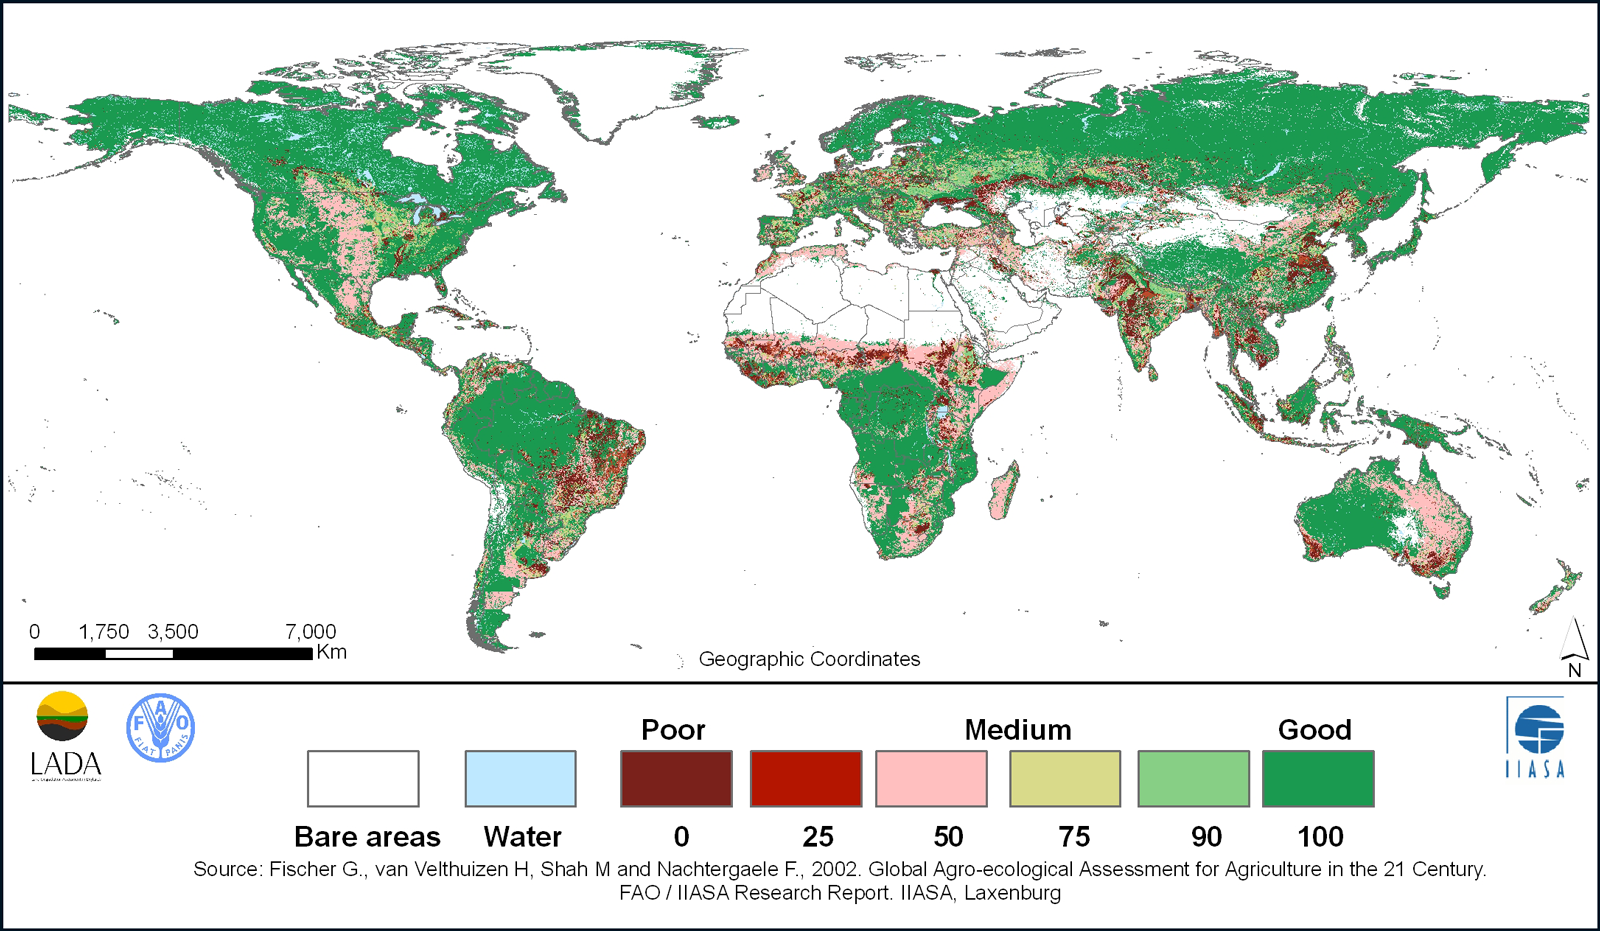 Map of the world color coded by relative soil health